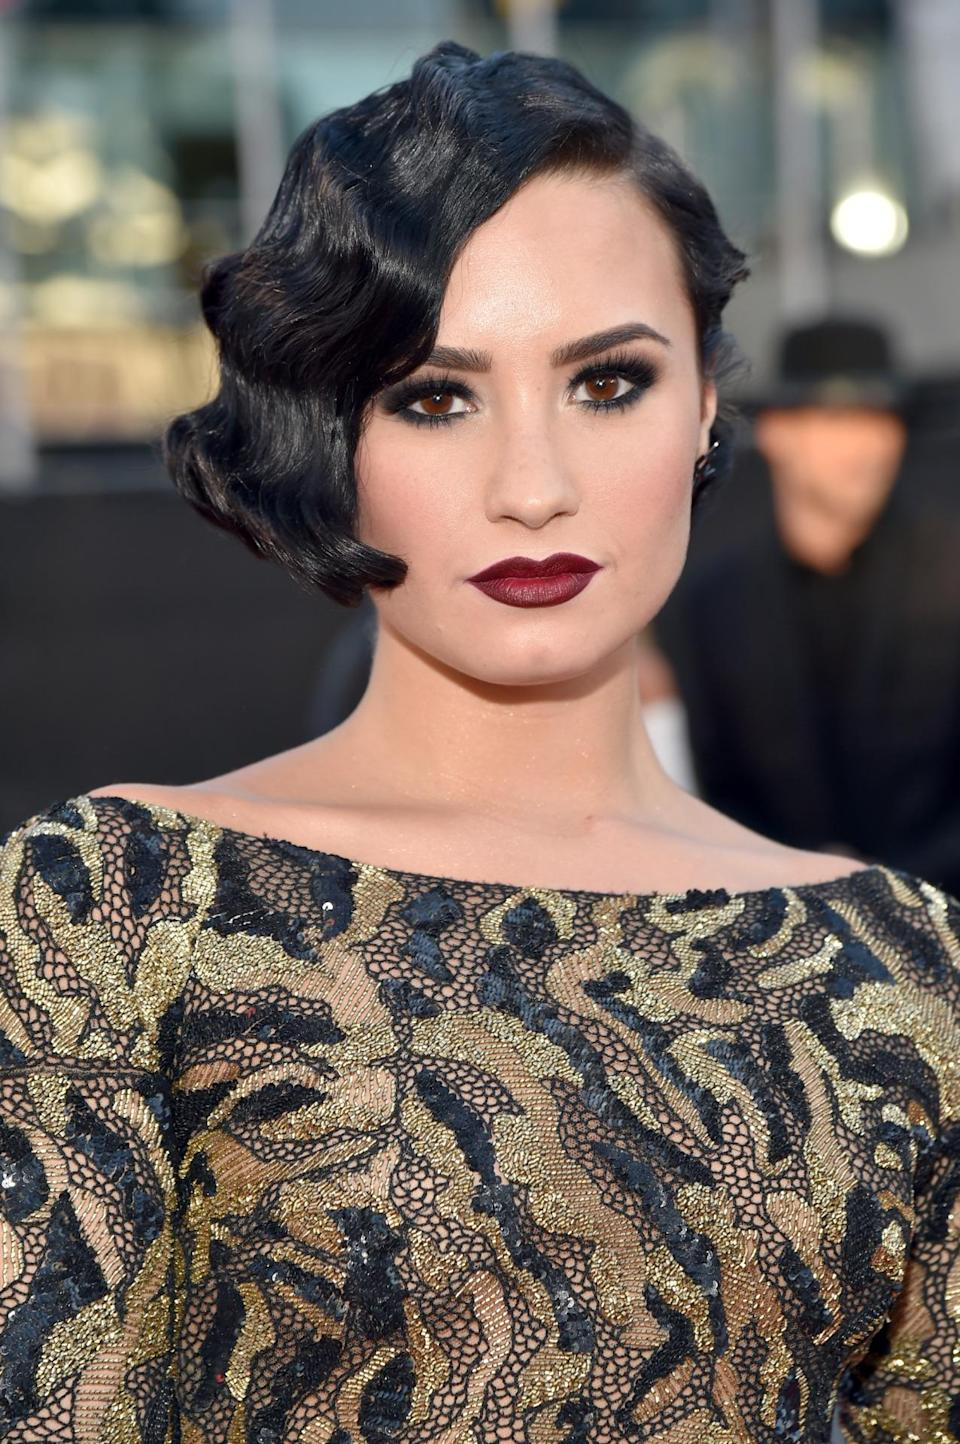 <p>The singer paired '20s-style finger waves with on-trend vamp lips and dark smoky eyes for the red carpet.<i> (Photo: Getty Images)</i></p>